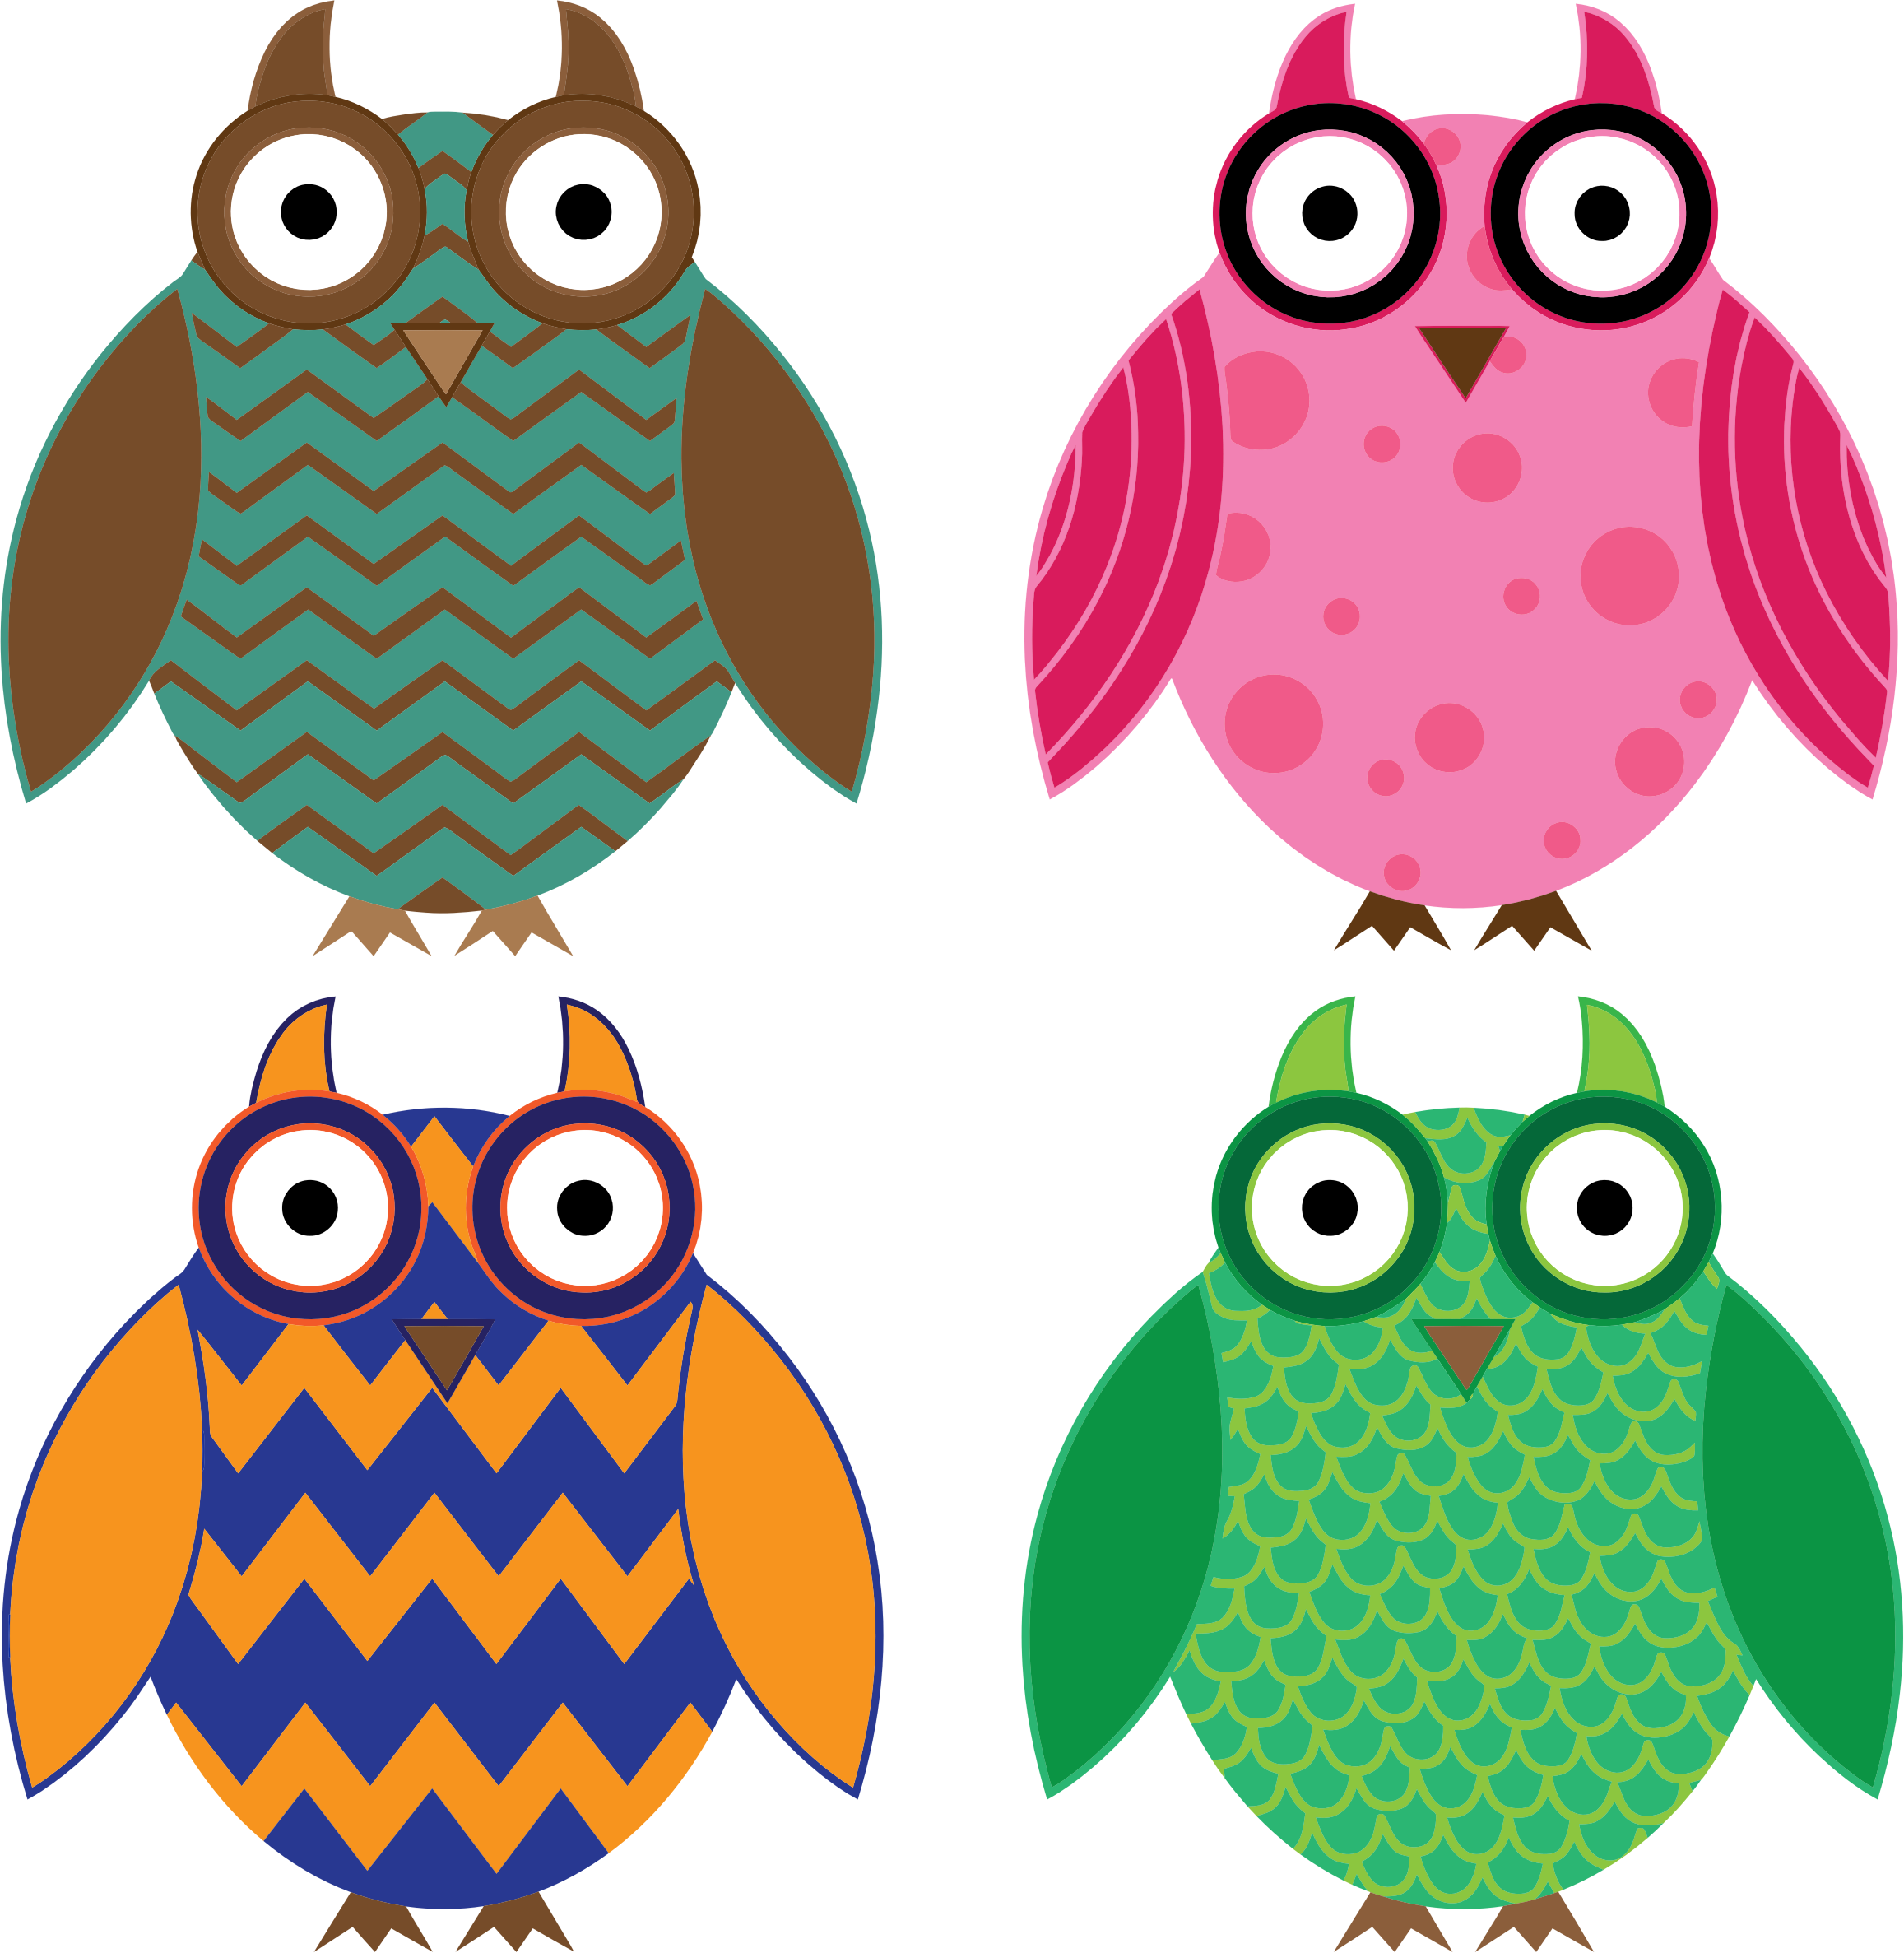 Four Colorful Owls by GDJ